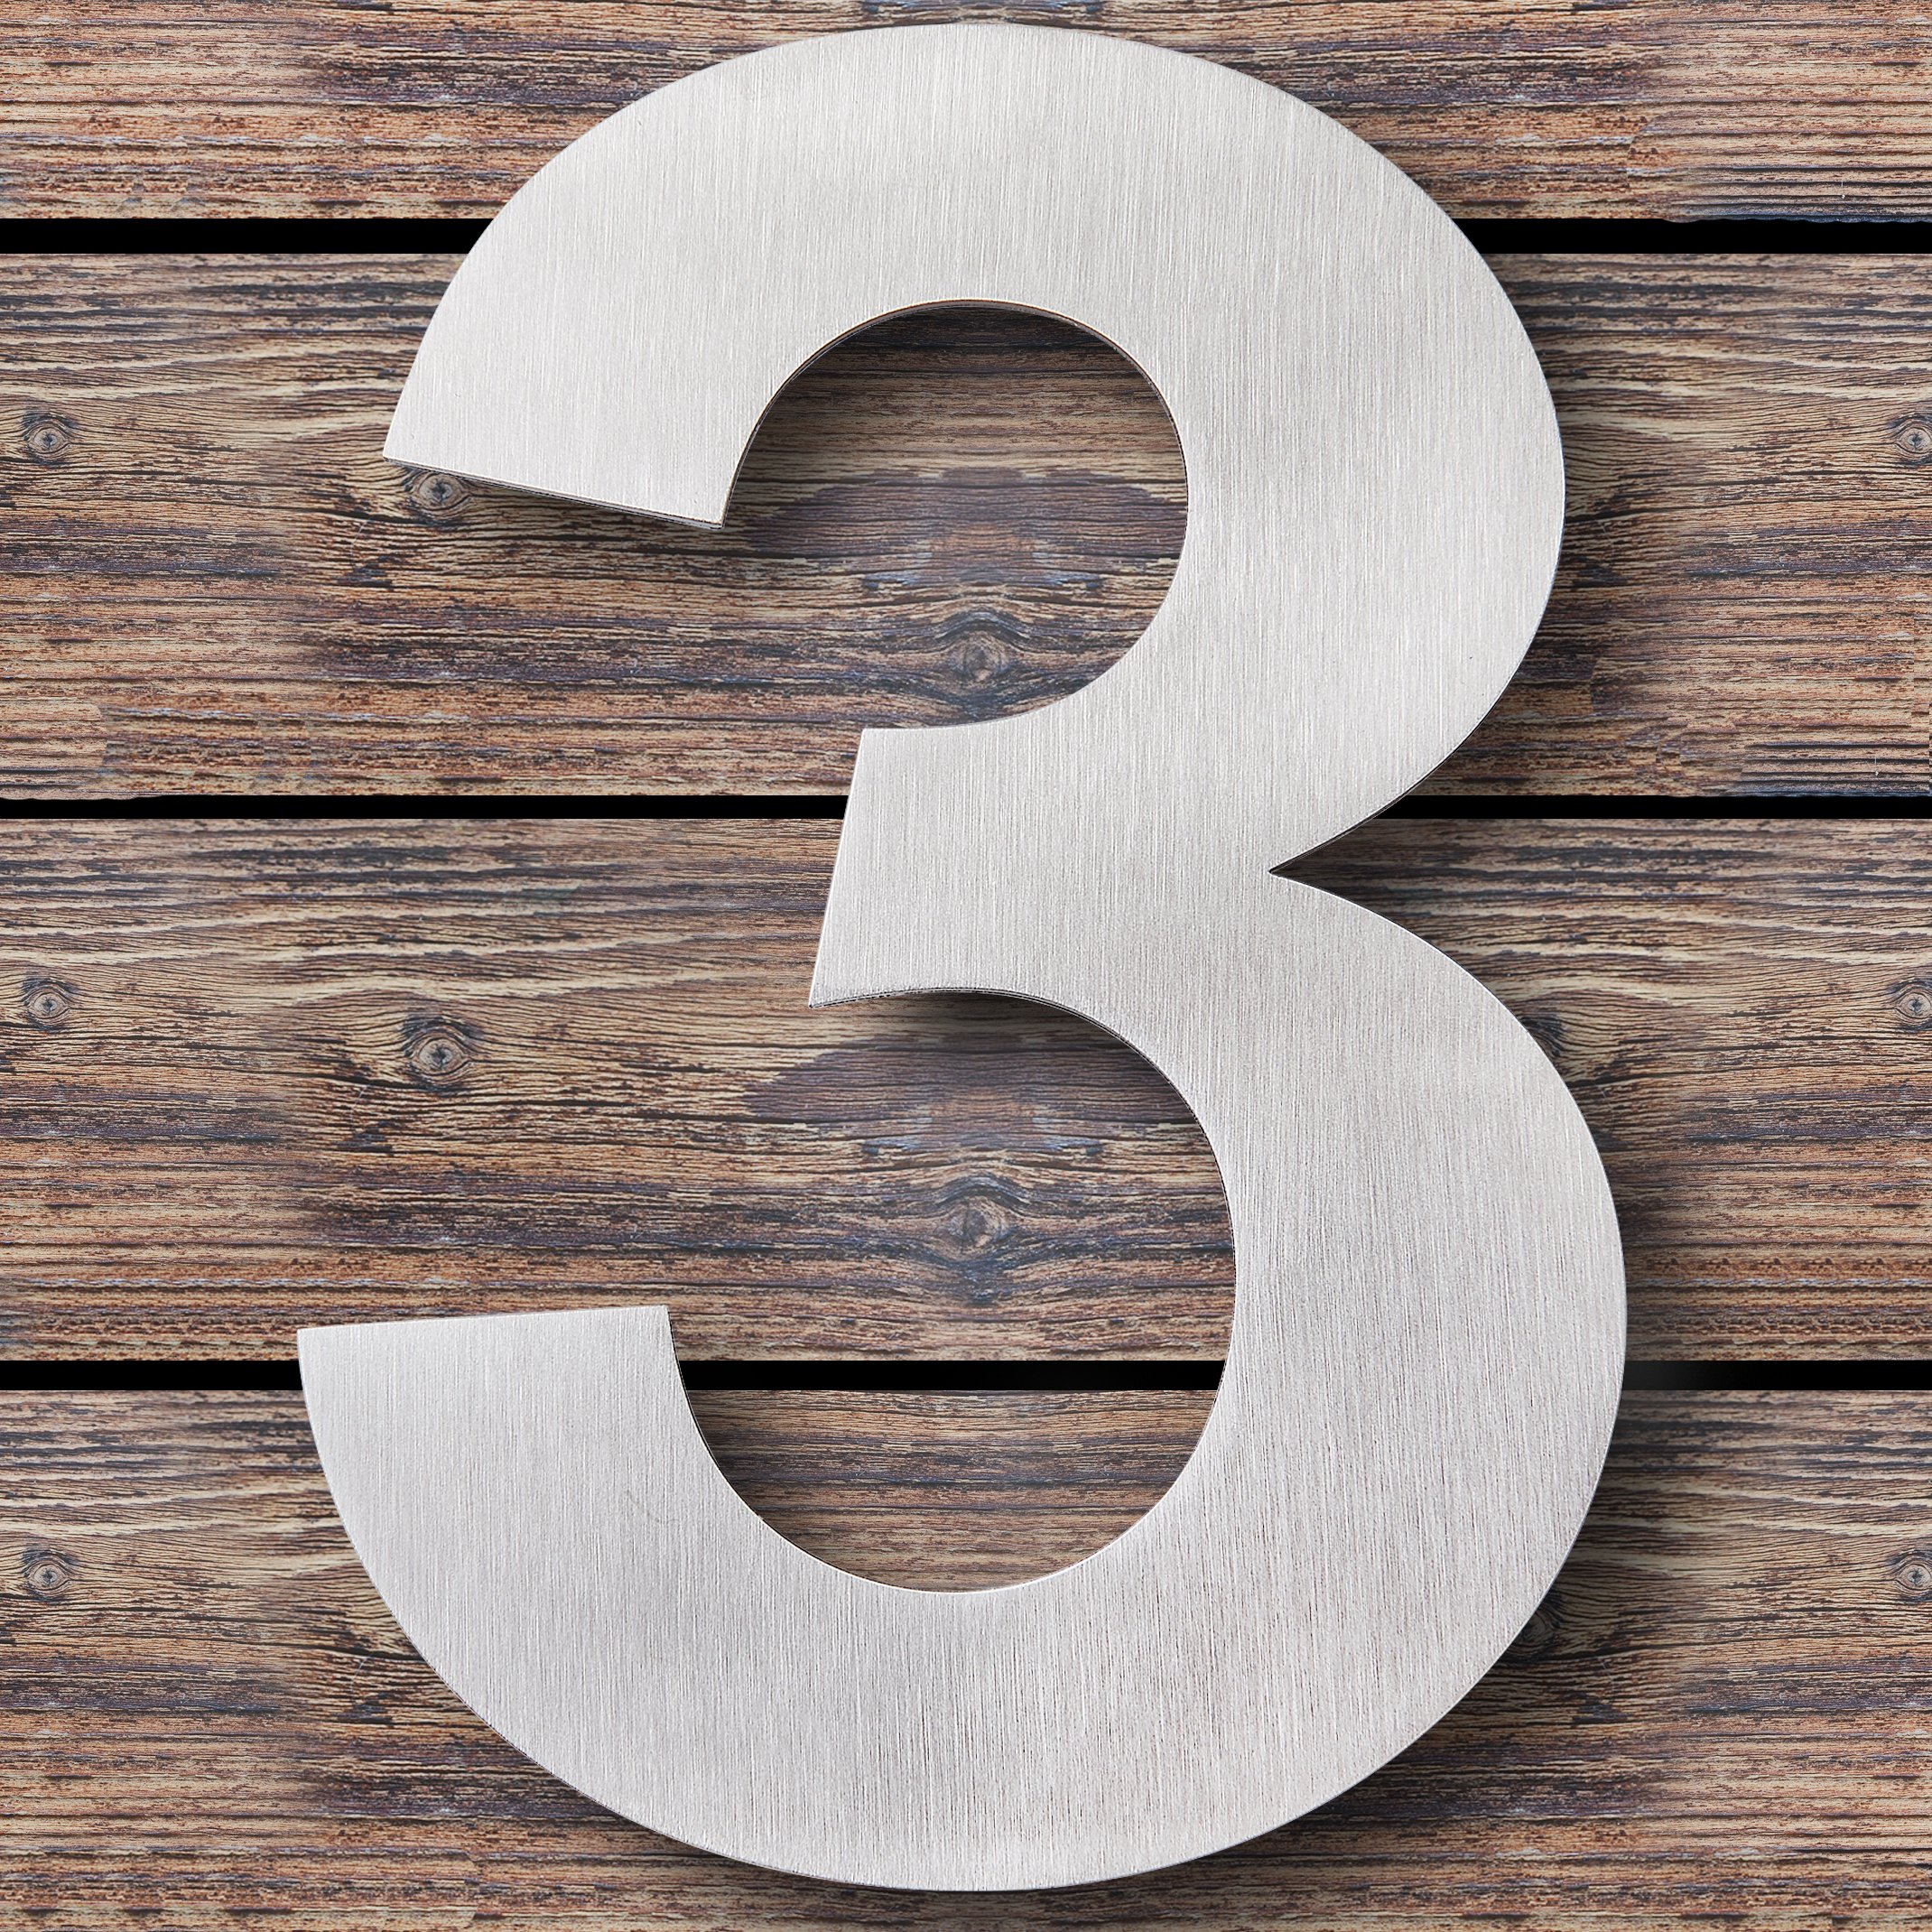 Royal H&H Large Modern House Numbers 6 inch (Number 3 Three) Floating Home Address Numerals Sign Plaque Heavy Duty Mount for Home Hotel Office Brushed Nickel Solid Stainless Steel